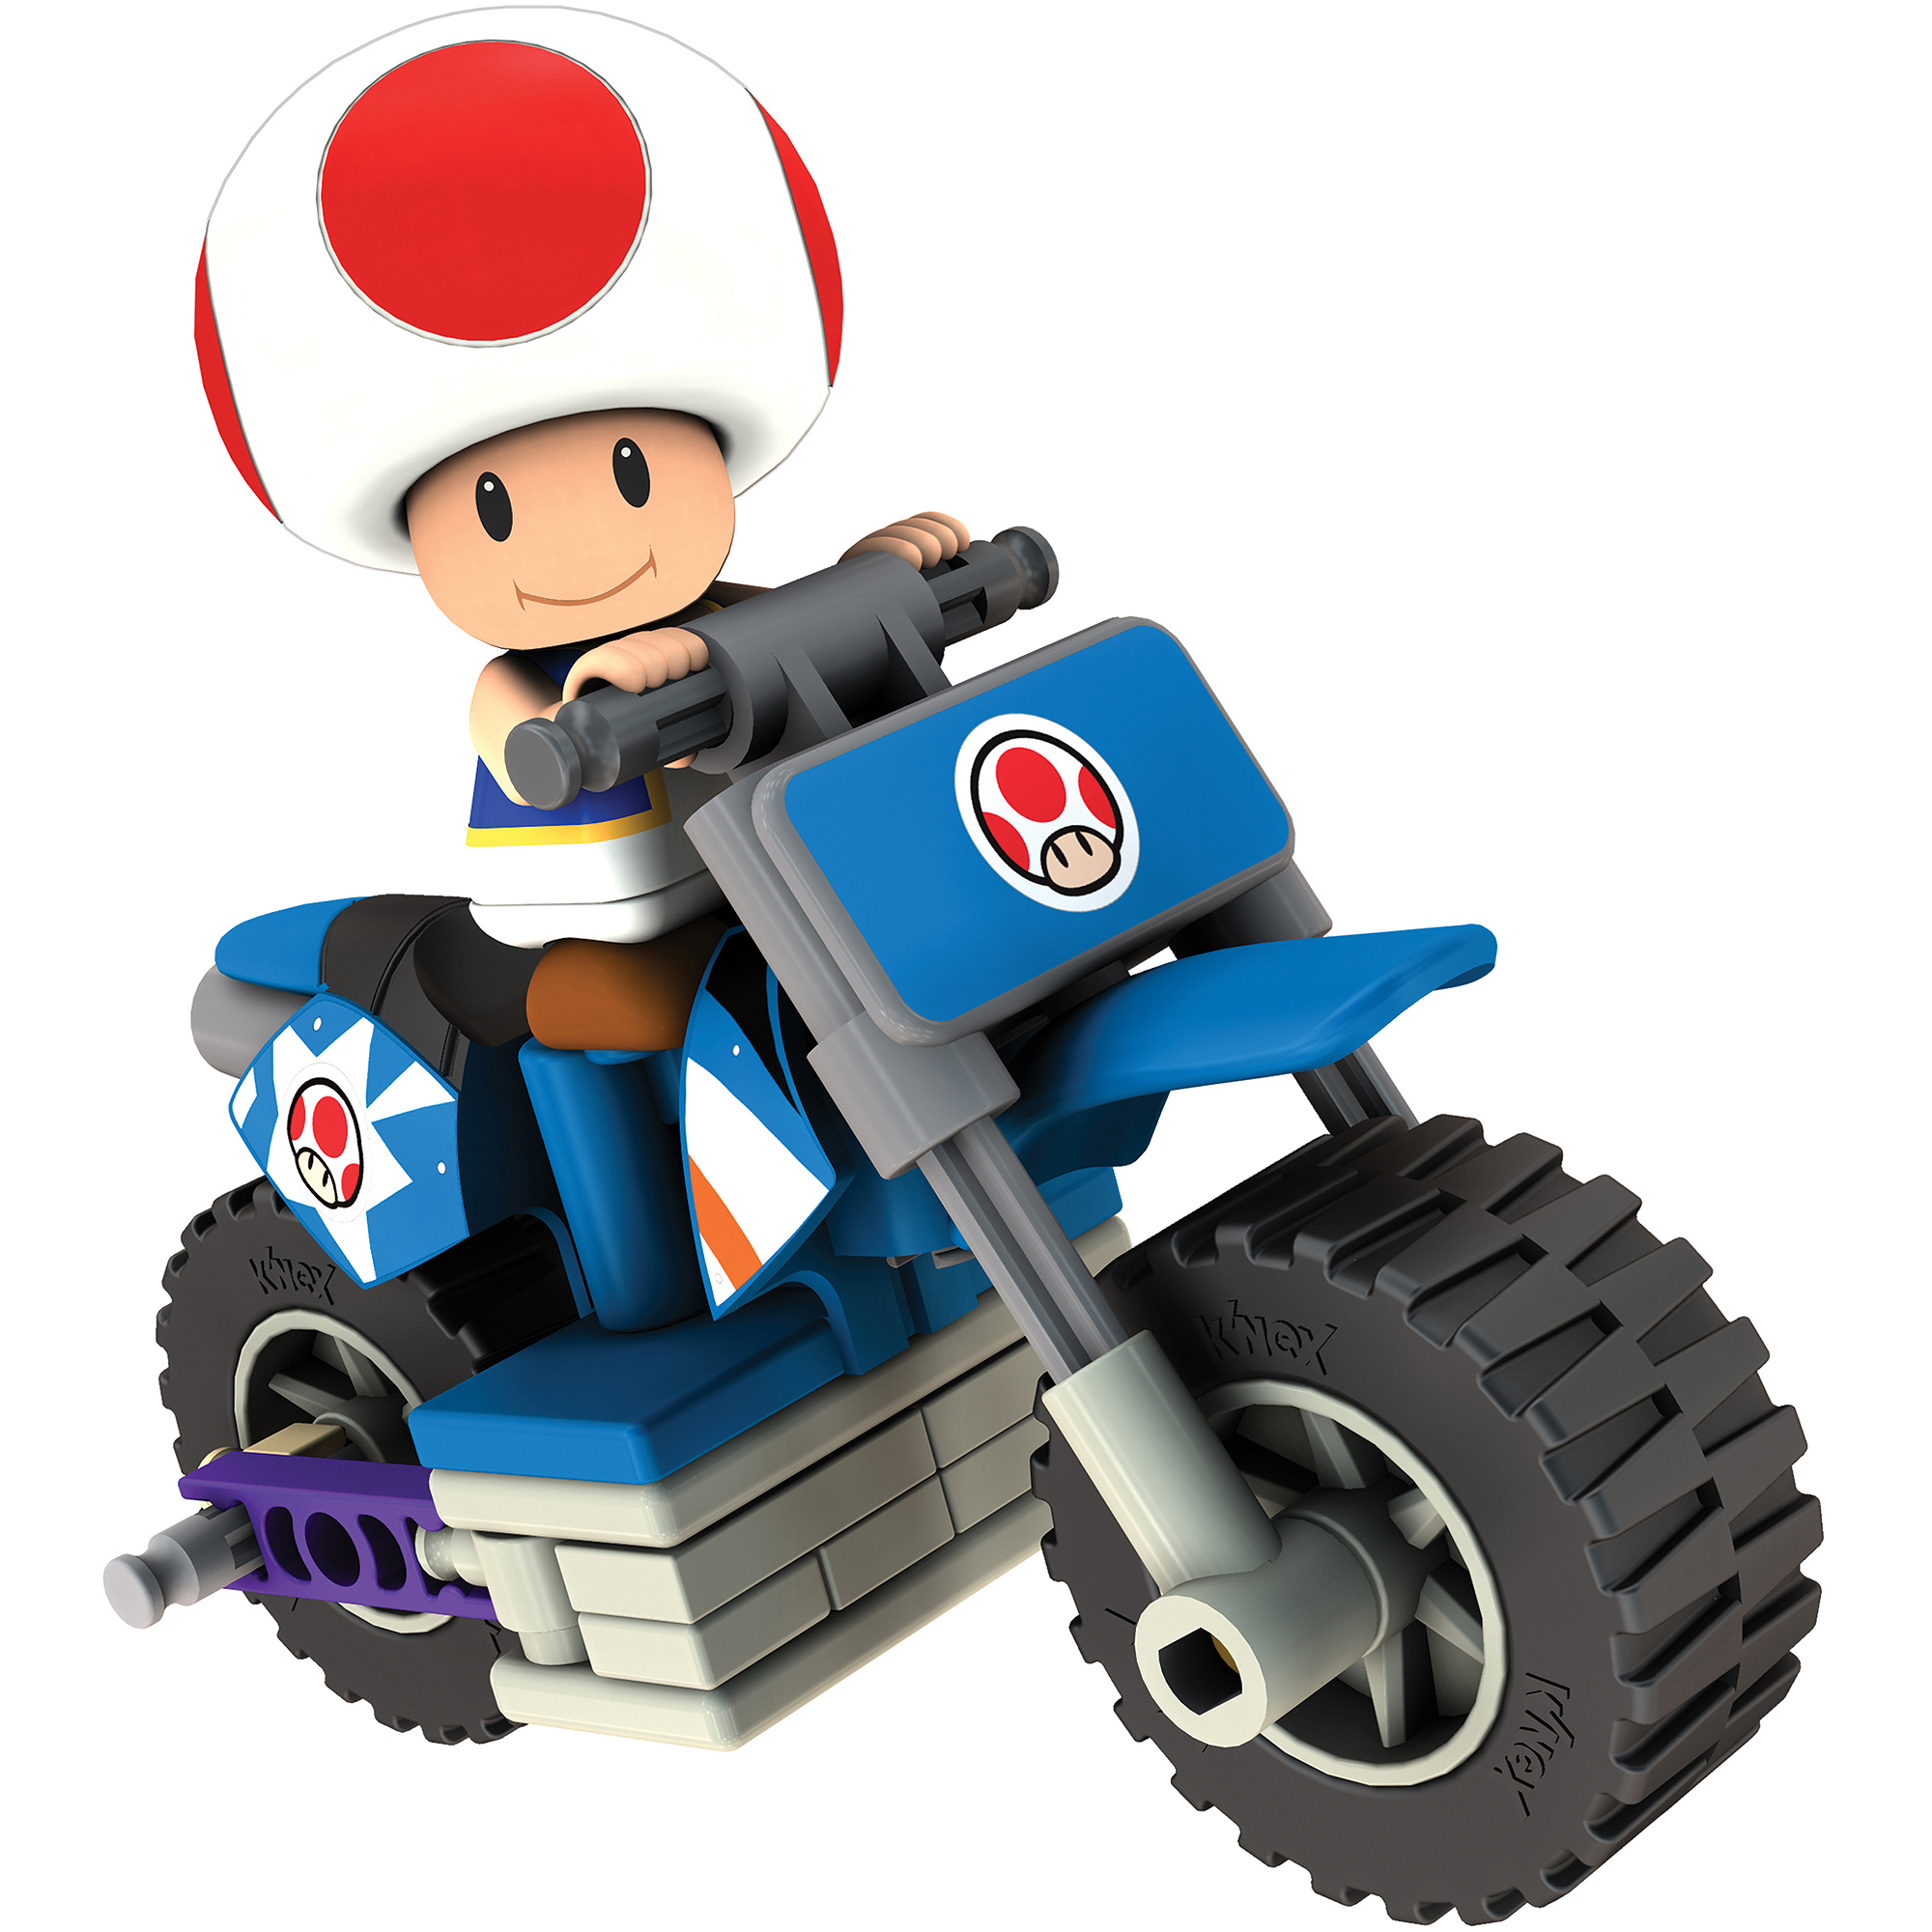 K'NEX Mario Kart Wii Building Set: Toad with Standard Bike